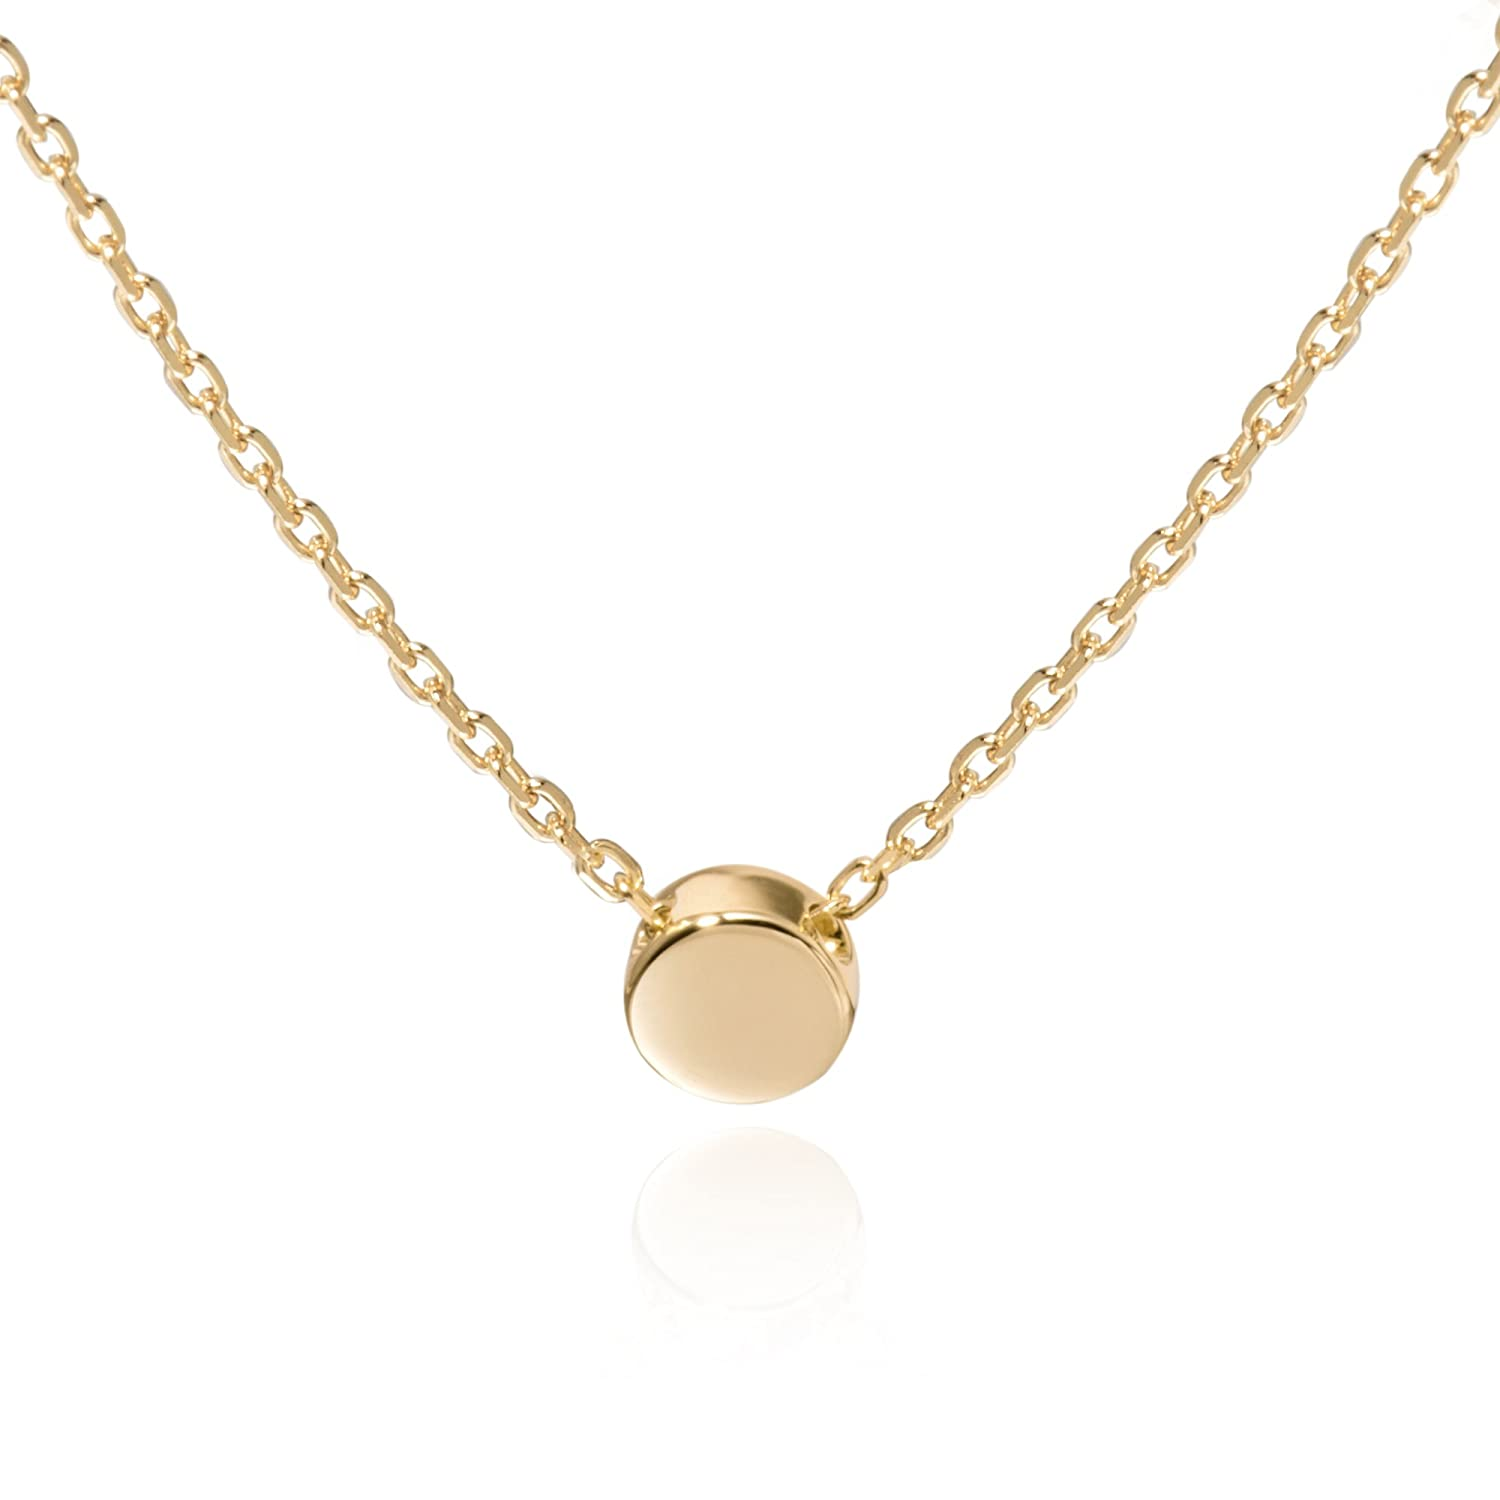 gold little com necklace lewis john monroe buyalex at main online rsp johnlewis alex feather pdp